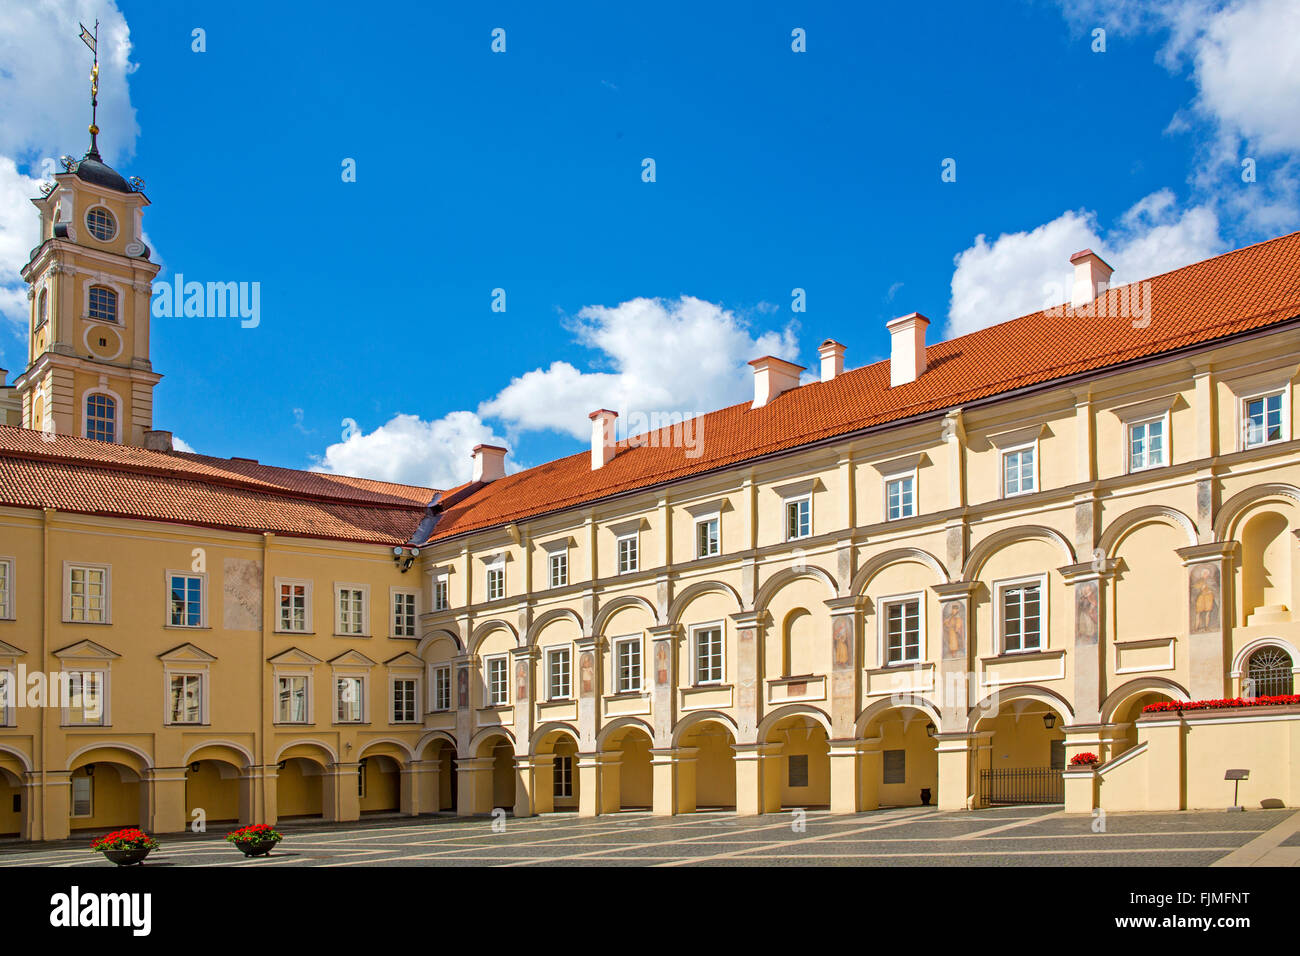 Geographie/Reisen, Litauen, Vilnius, Universität, Sarkos Court, Additional-Rights - Clearance-Info - Not-Available Stockbild